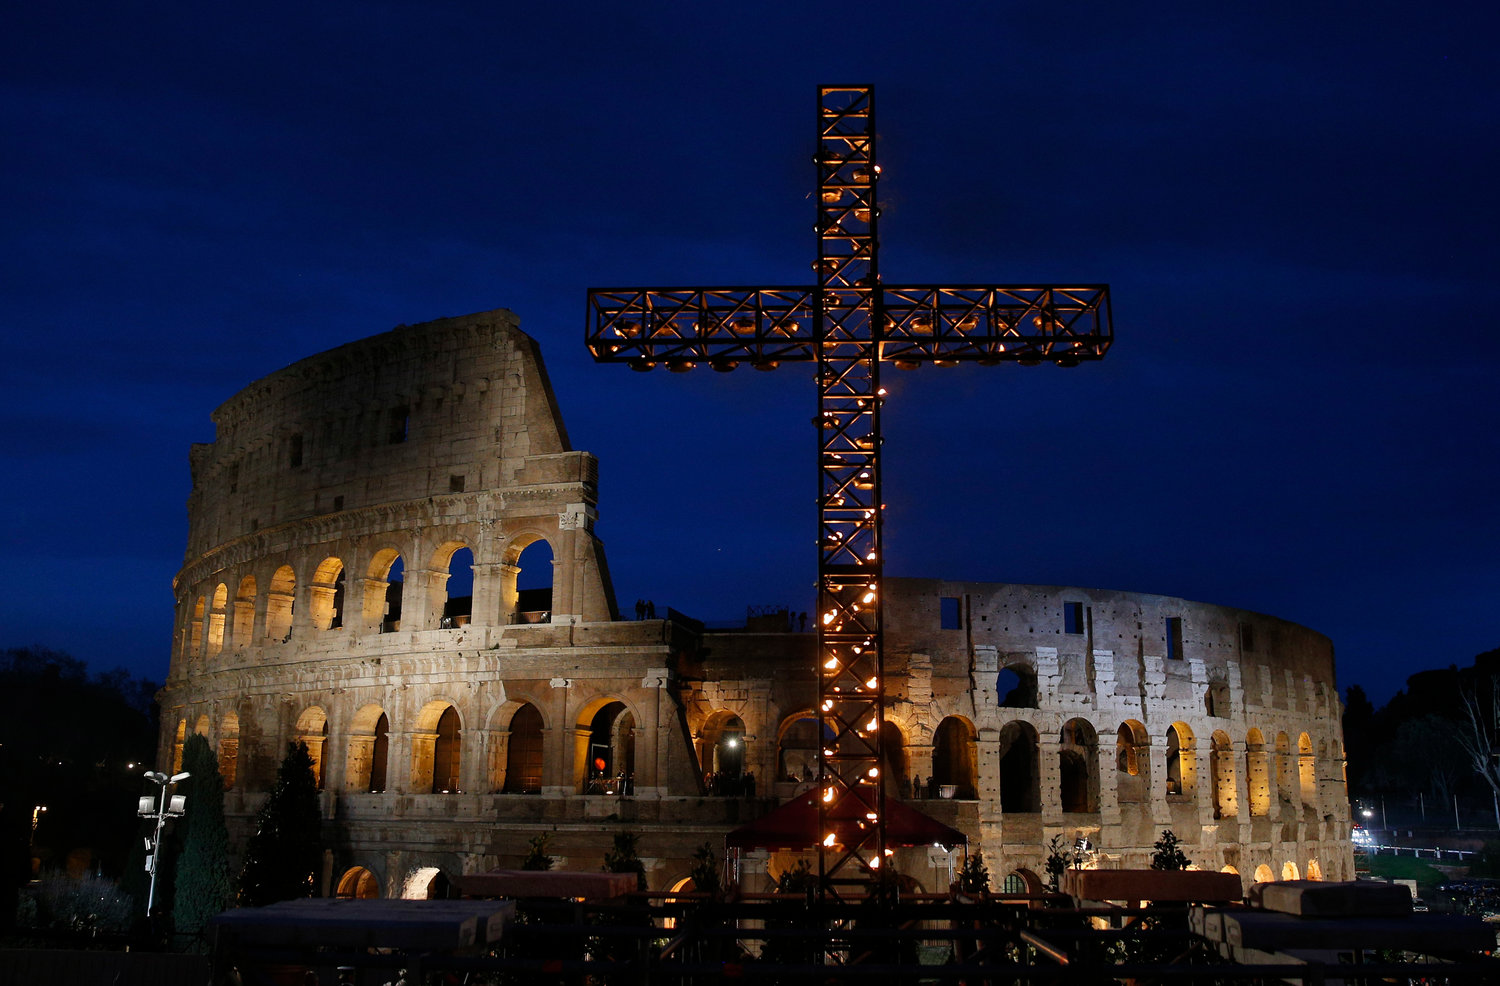 Rome's Colosseum is illuminated during the Way of the Cross March 30, 2018. Pope Francis has asked Missionary Sister Eugenia Bonetti, a long-time activist in the fight against human trafficking, to write the meditations for his celebration of the Good Friday Way of the Cross prayer service at Rome's Colosseum April 19, 2019.